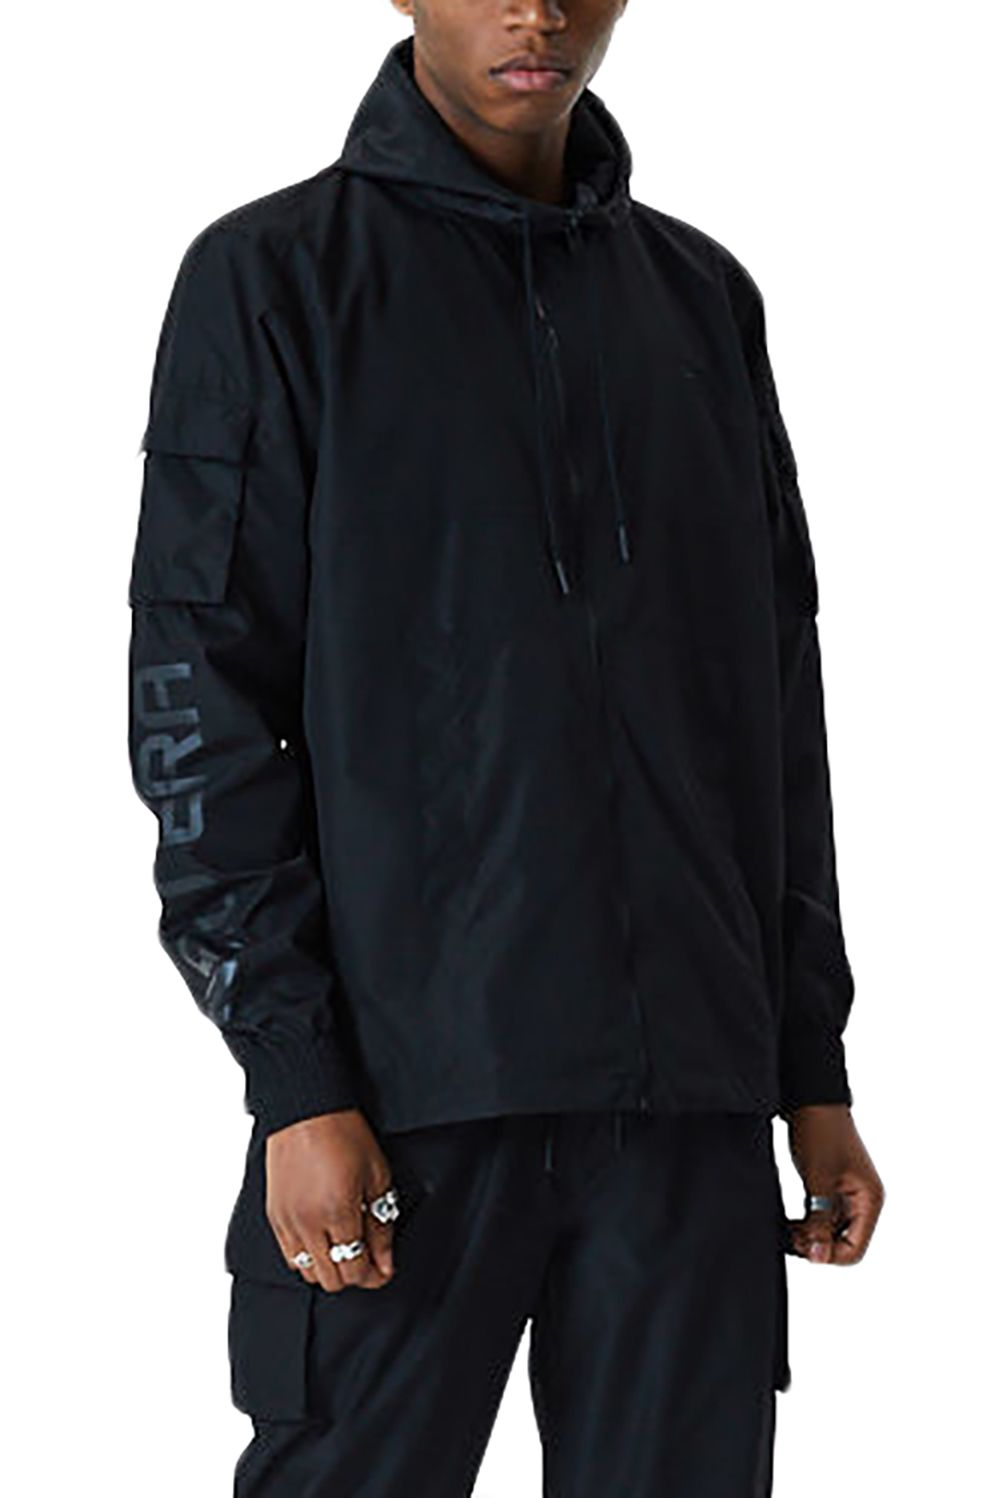 Corta Vento New Era NE CARGO WINDBREAKER Black